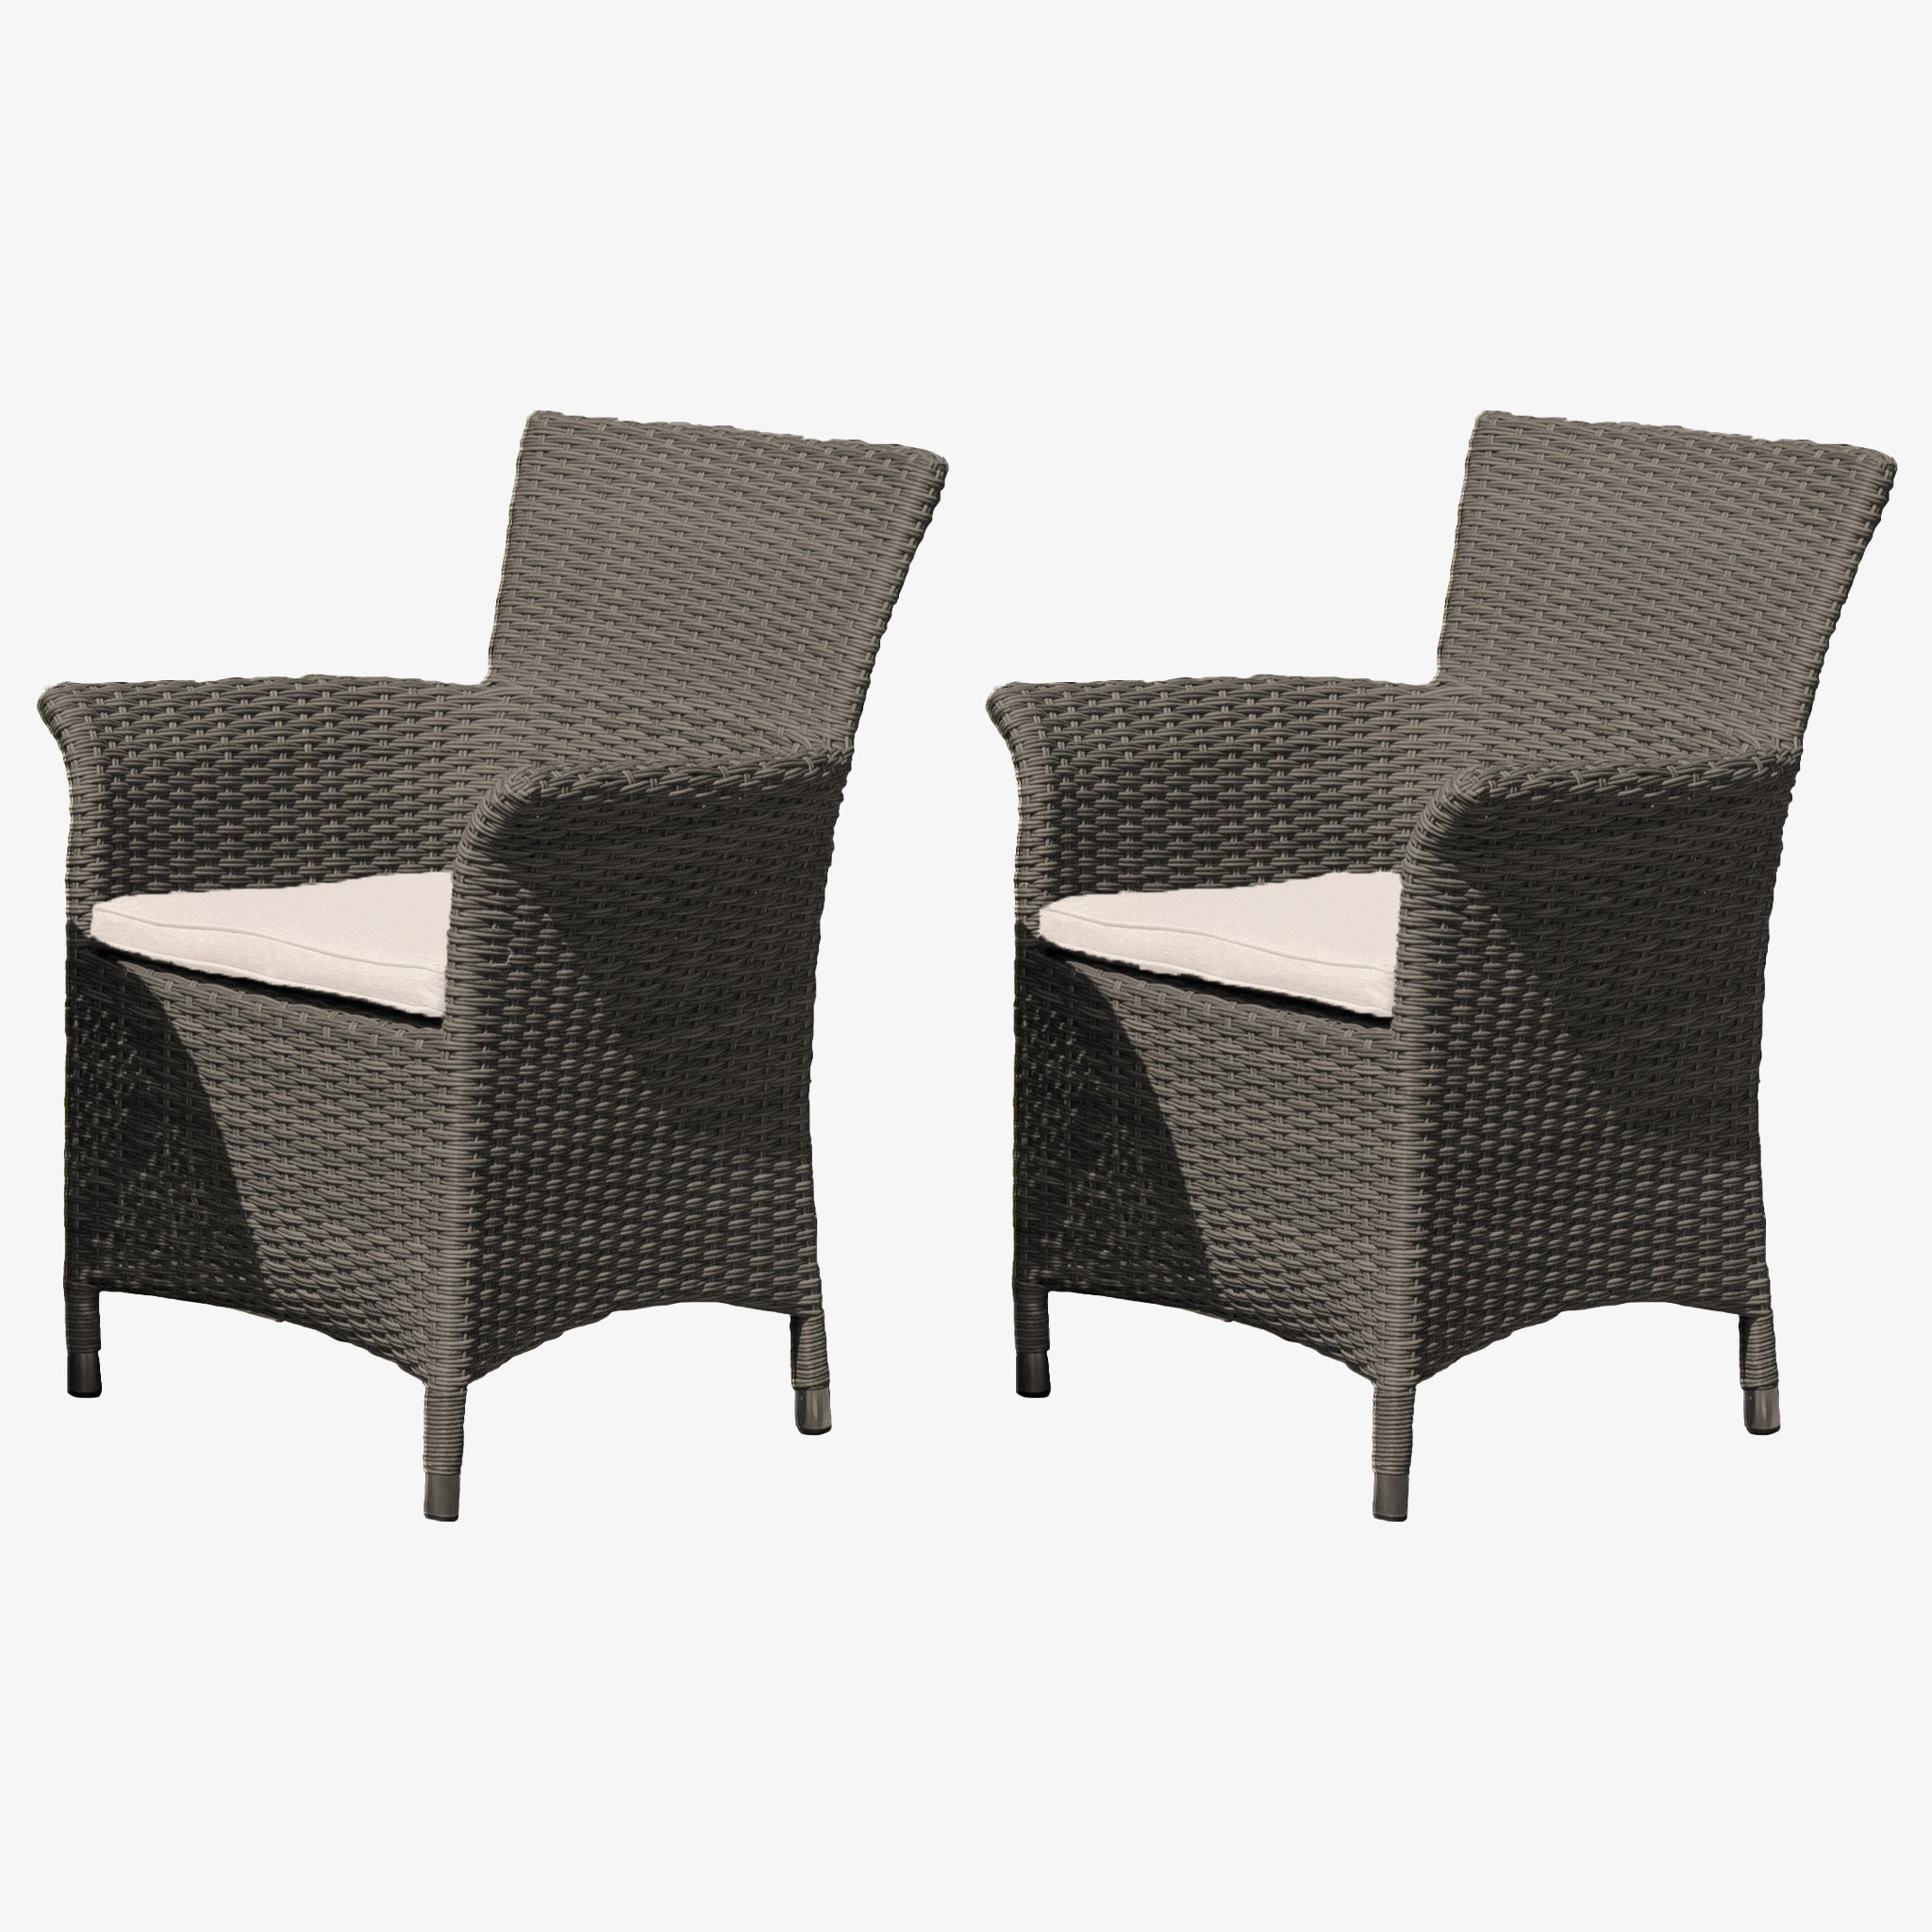 Serica Dark Chairs | Set of 2